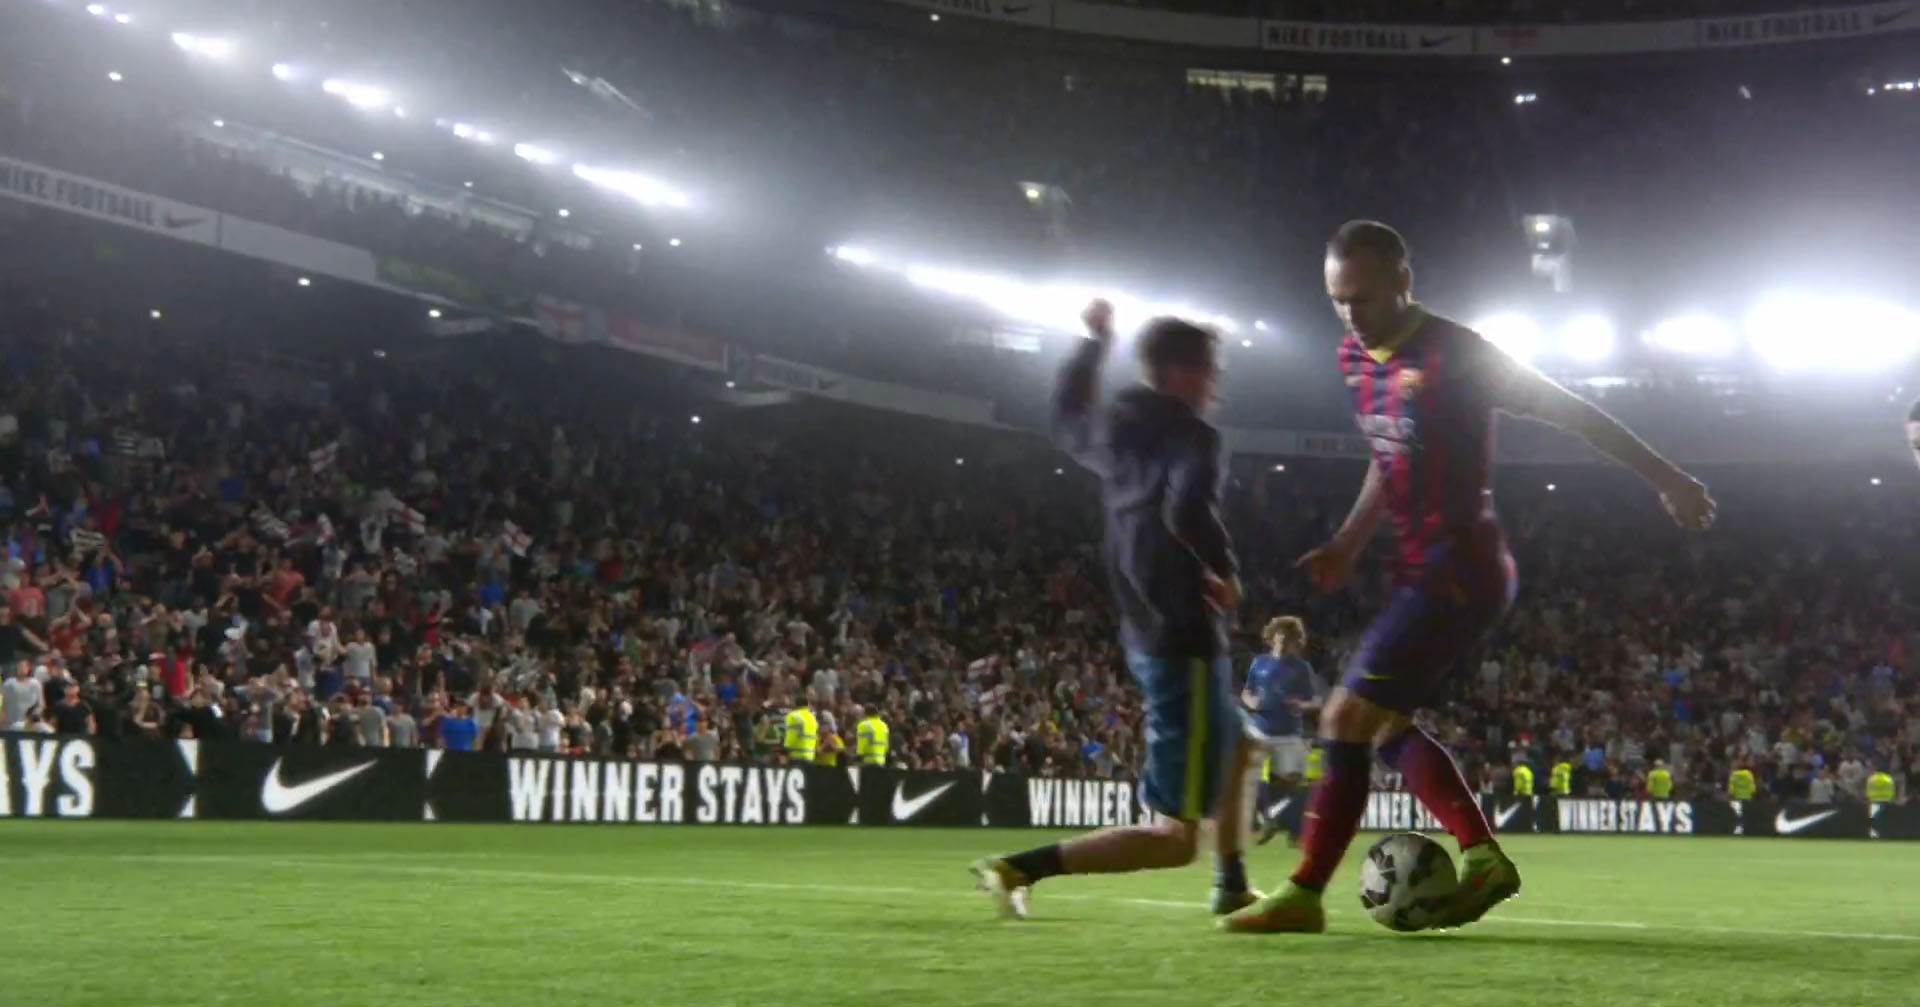 Iniesta dribbling trick in Nike's new video ad